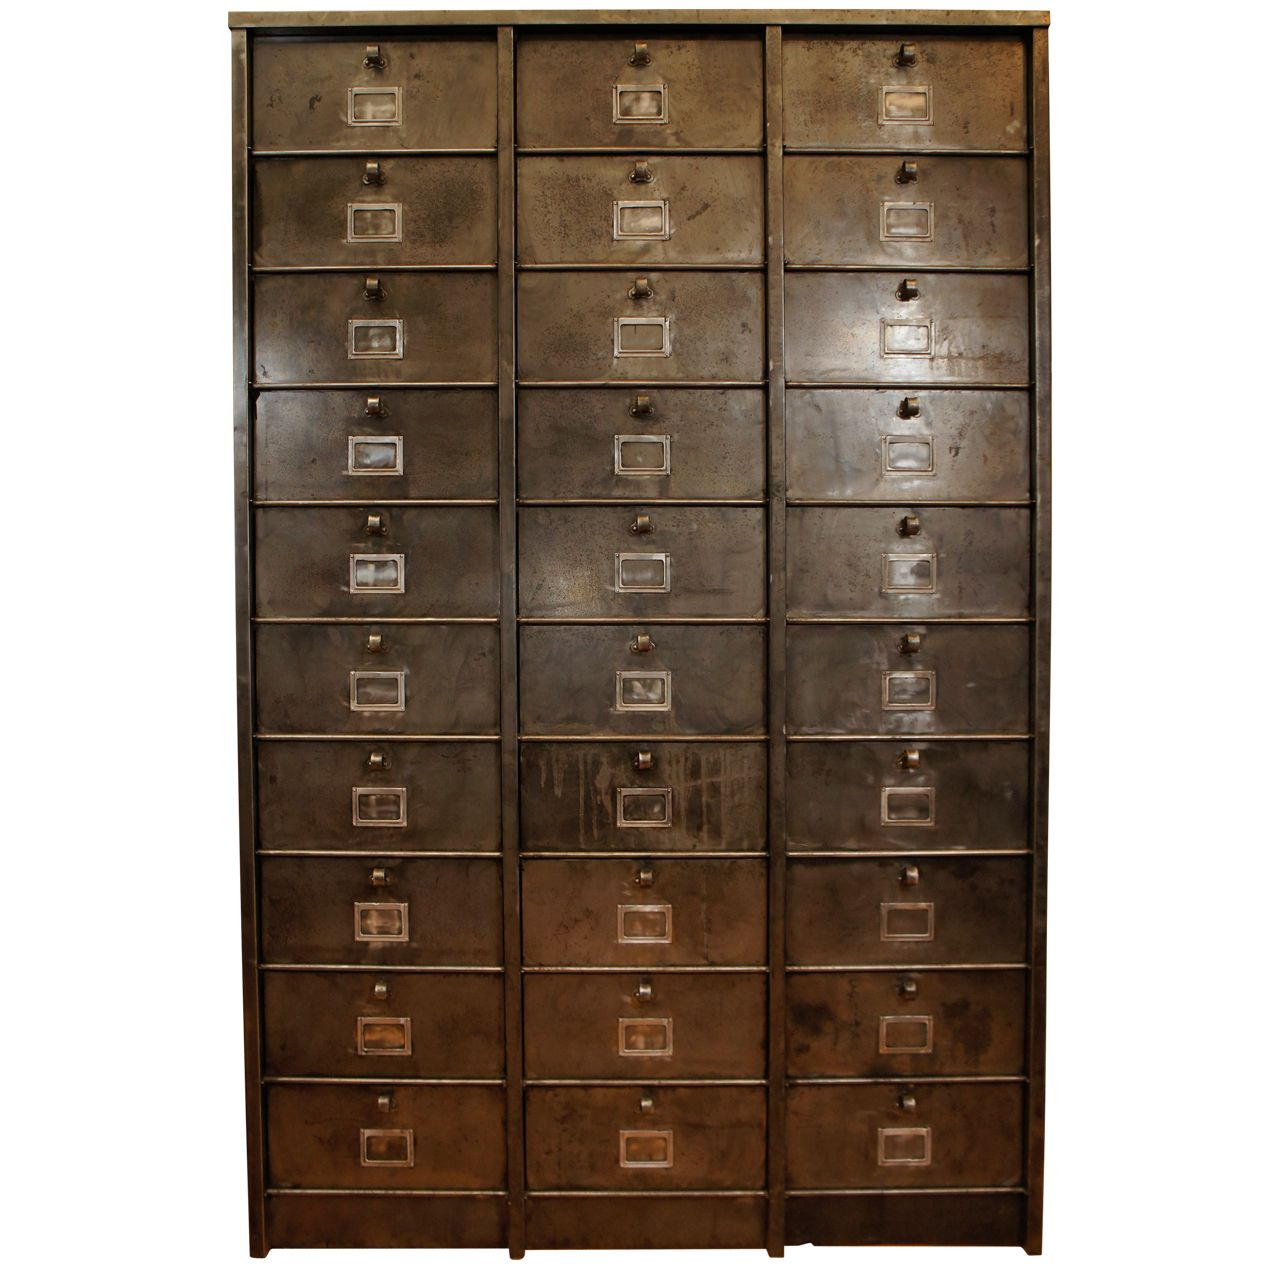 french industrial metal cabinet 30 drawers